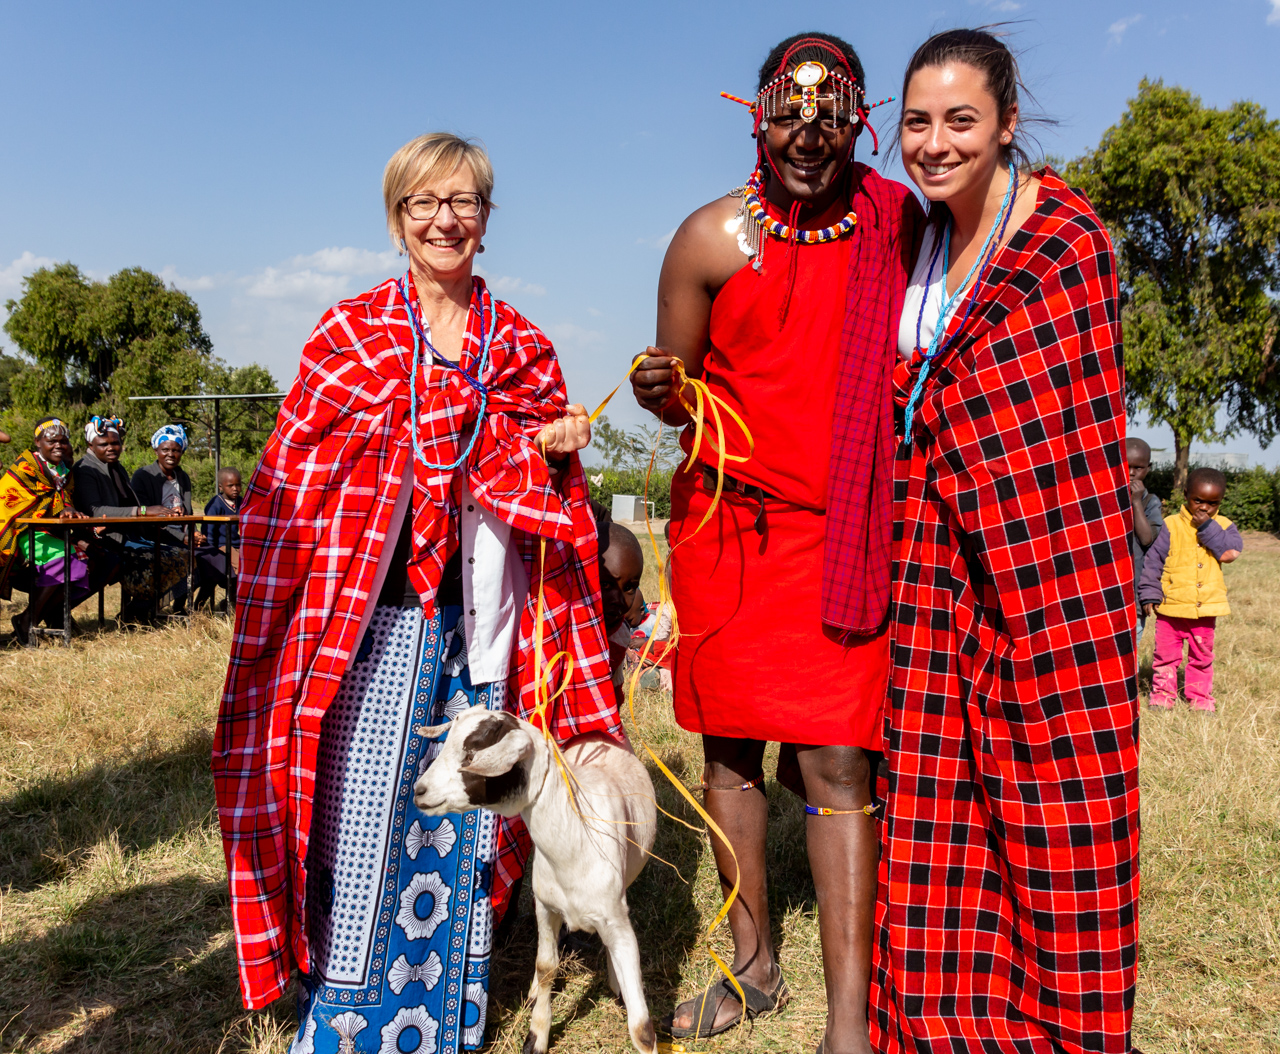 Heather Skoll and Sarah Nezon in Kenya, We Can Change the World Day, We Charity